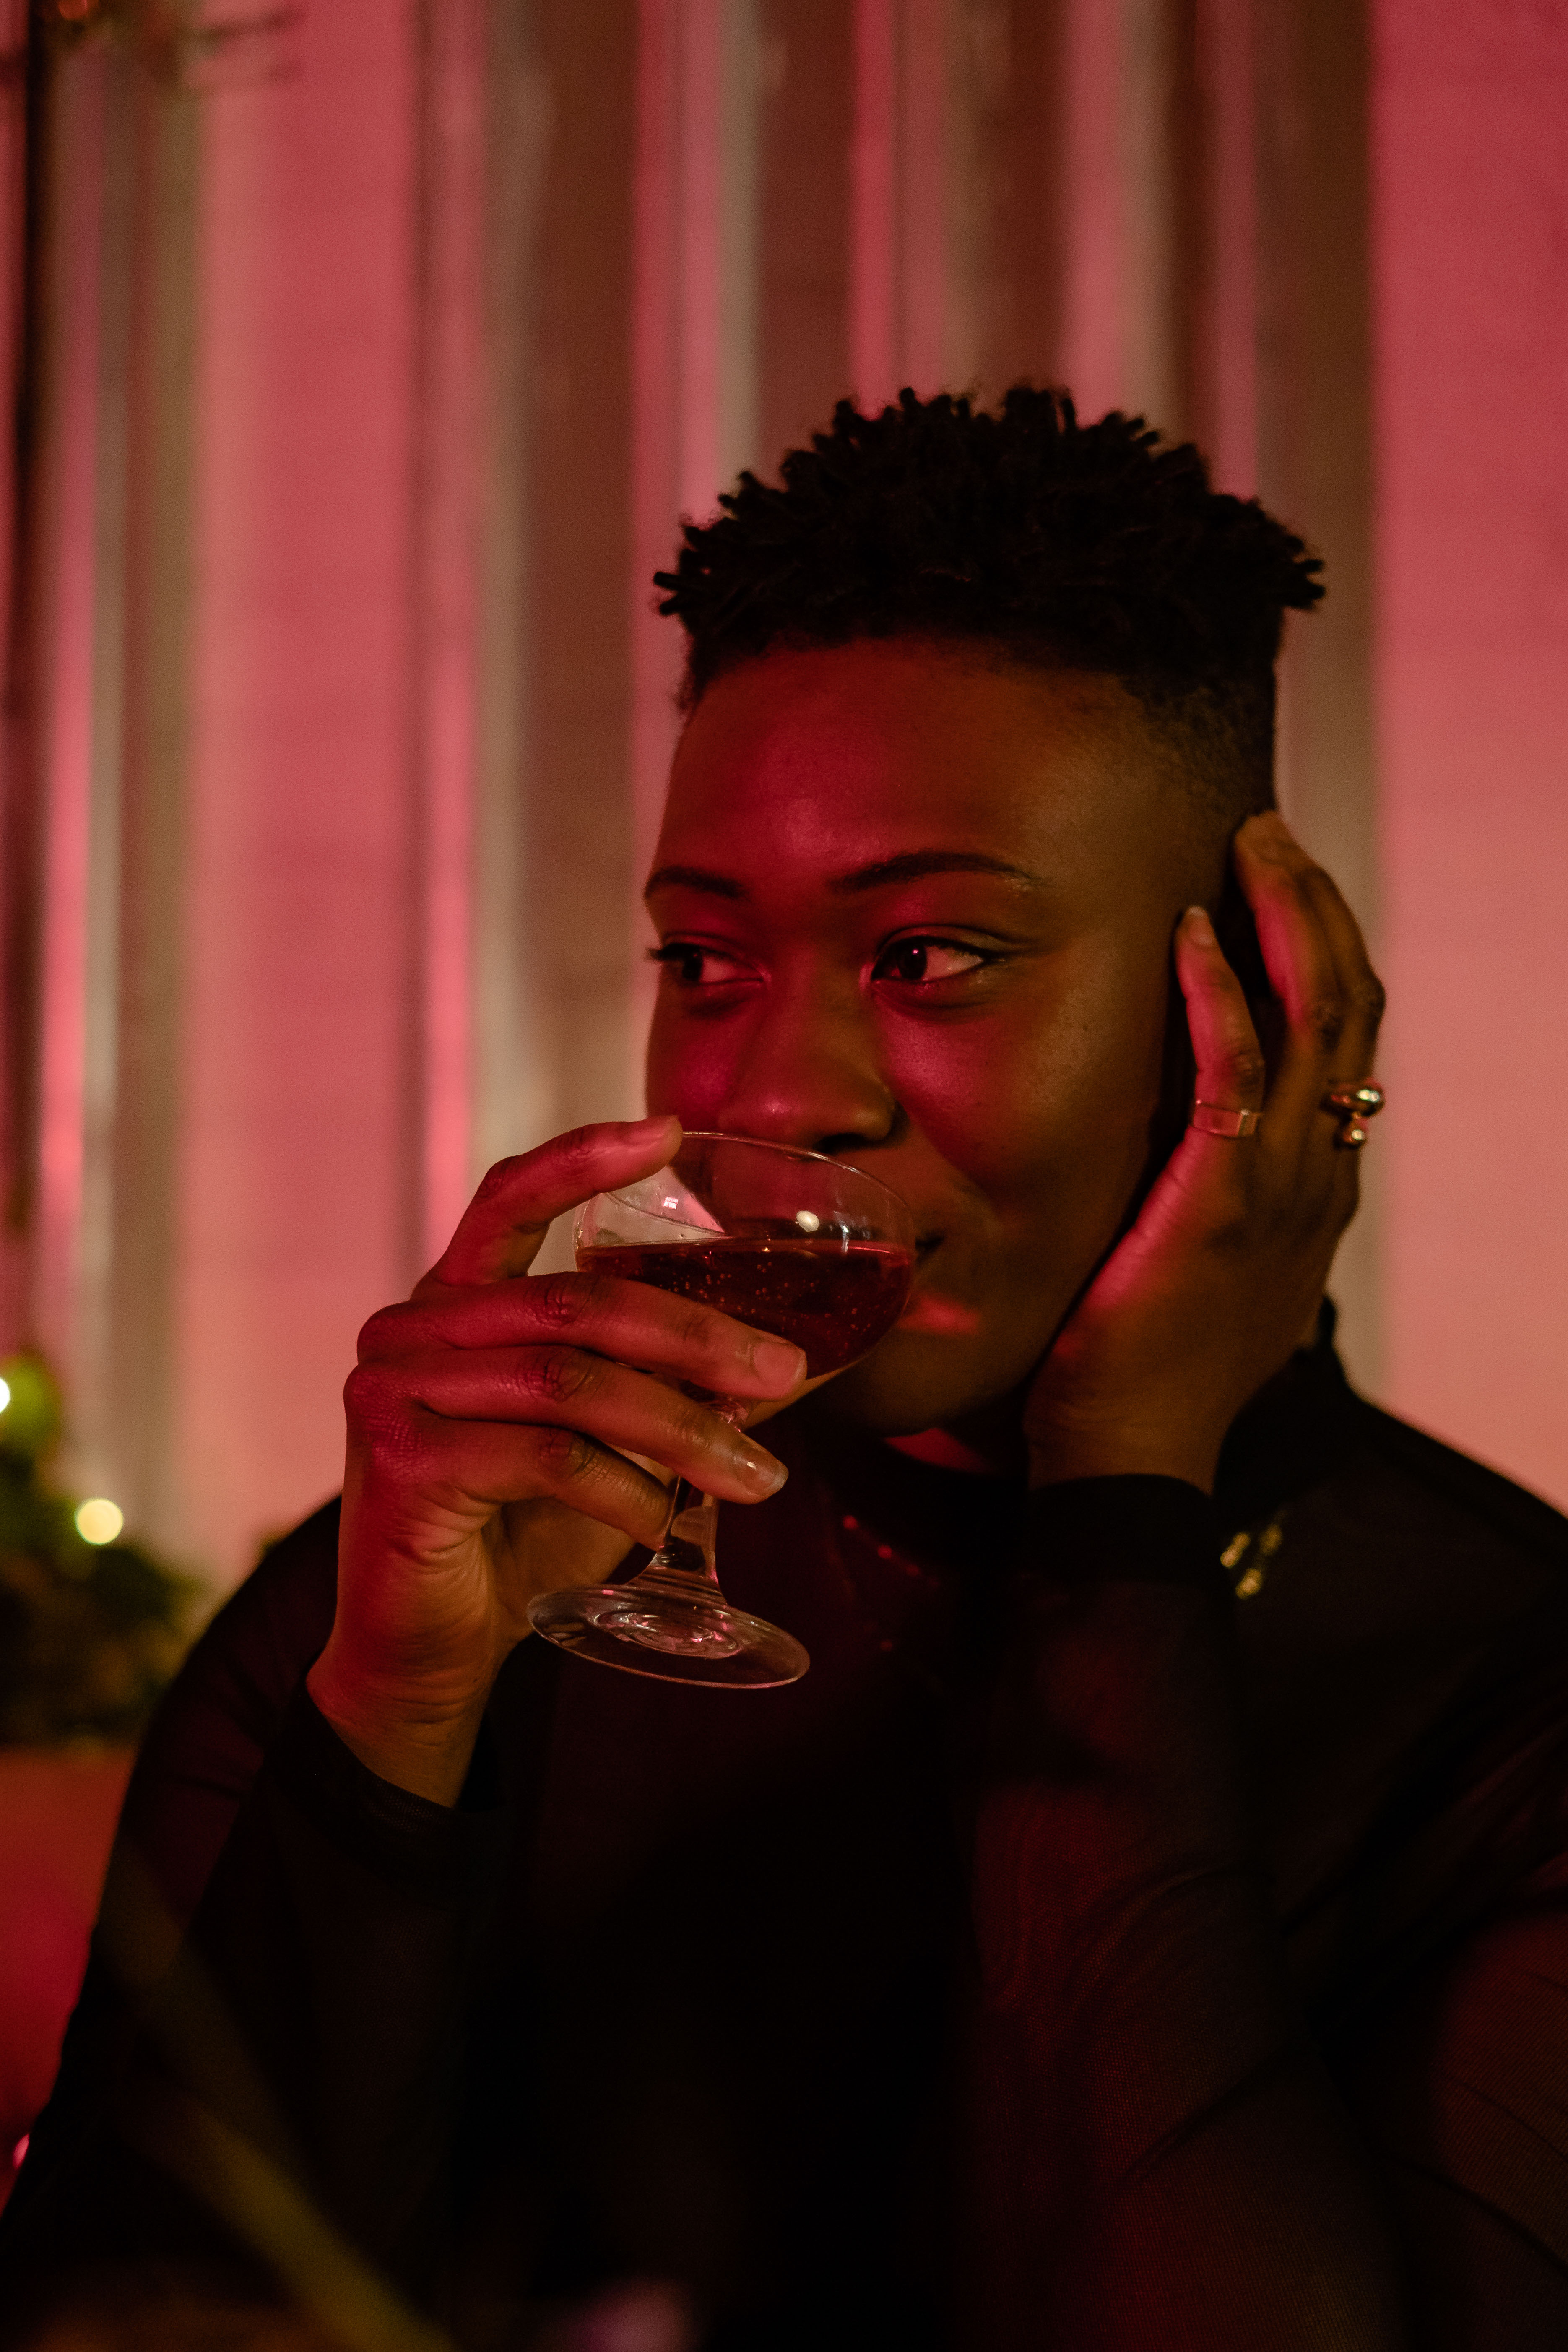 A non-binary person sipping a drink at a bar (1)